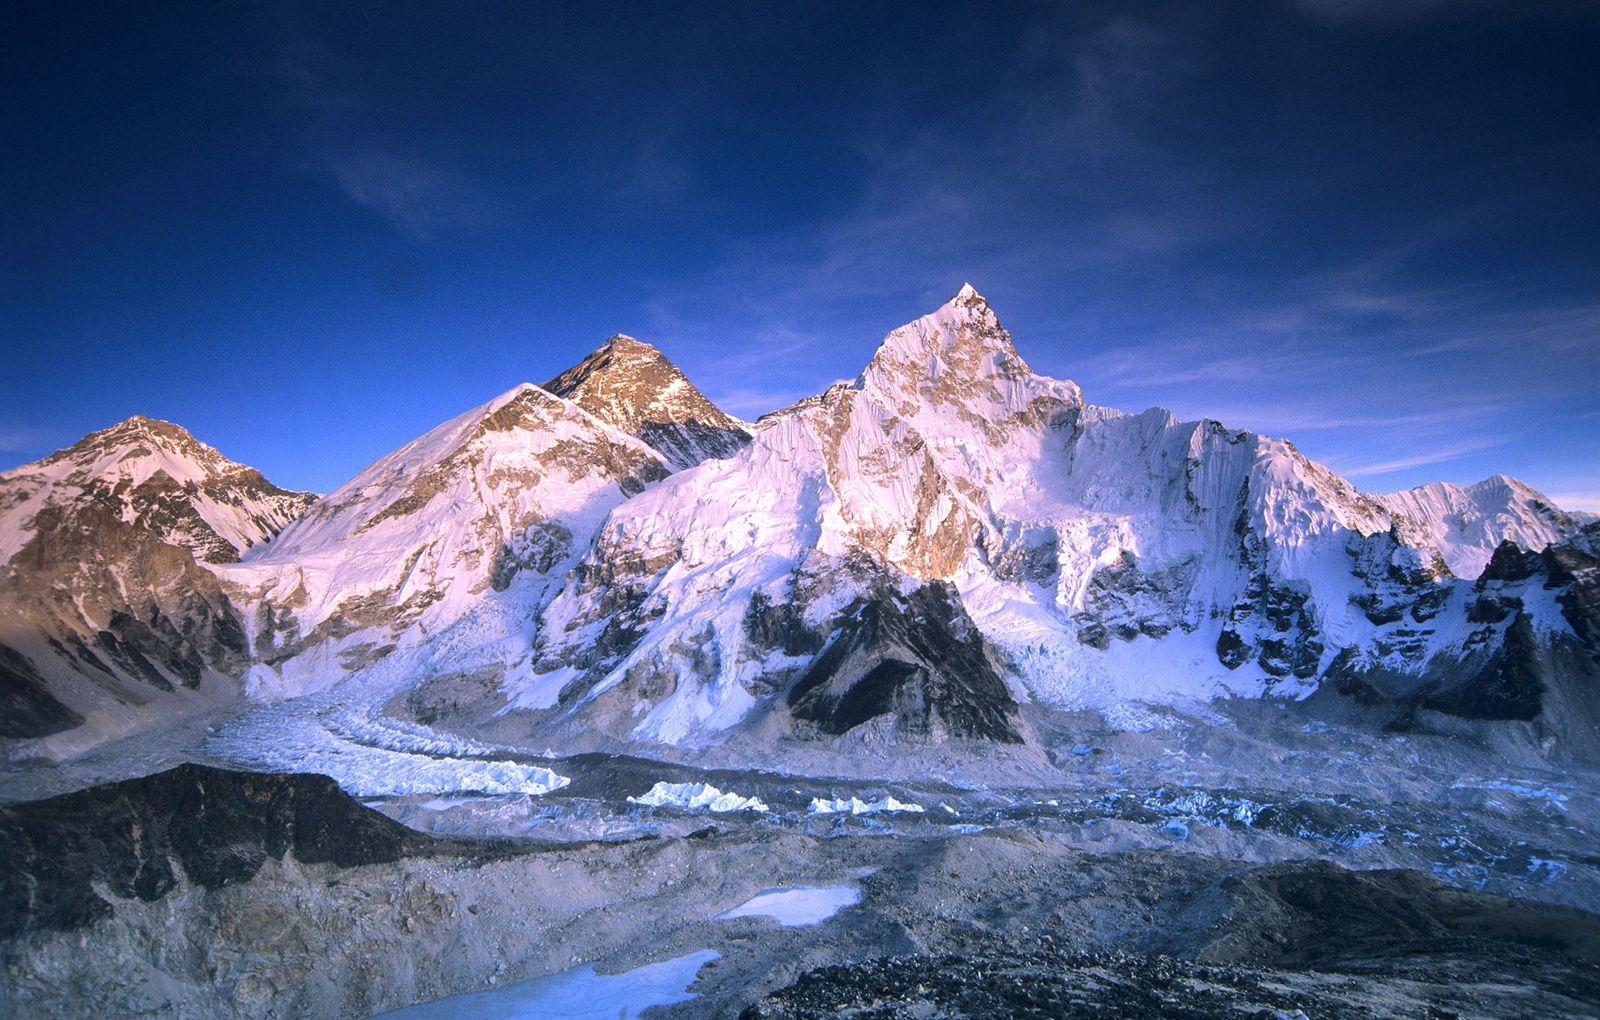 These are Earth's highest peaks at their deadliest